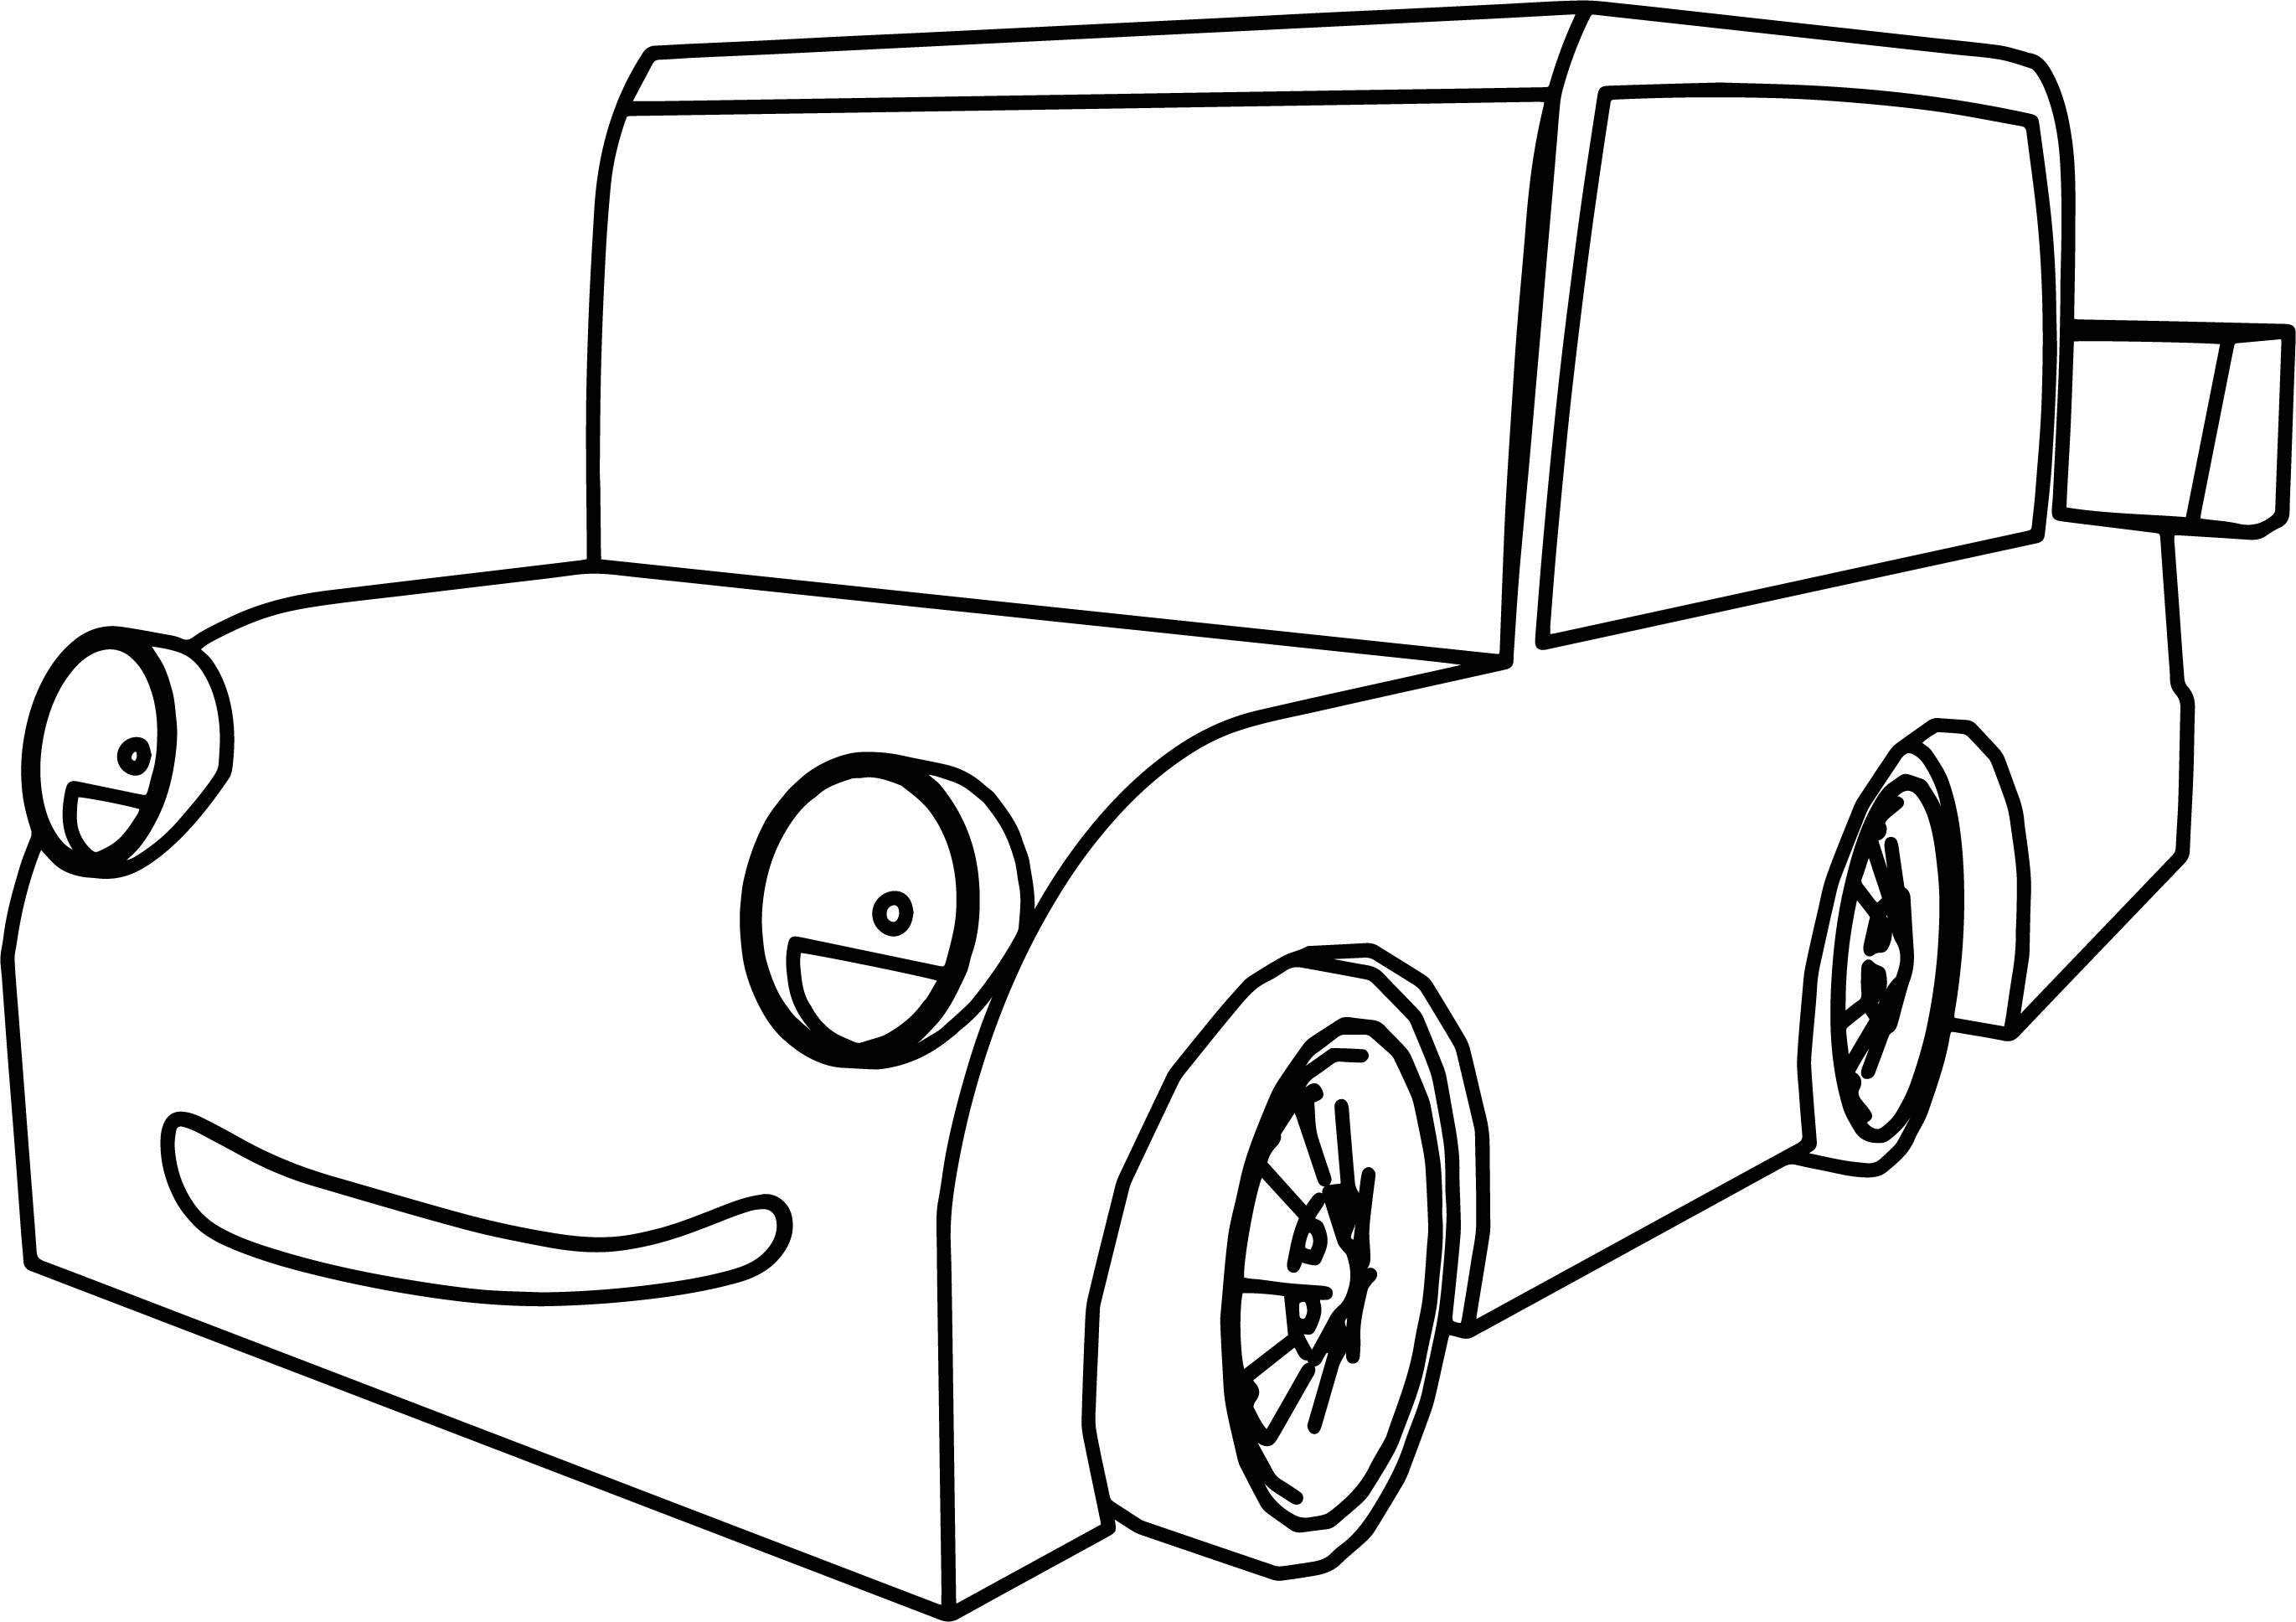 Coloring Pages Cars Cartoon : Cartoon racing car  coloring pages of cars